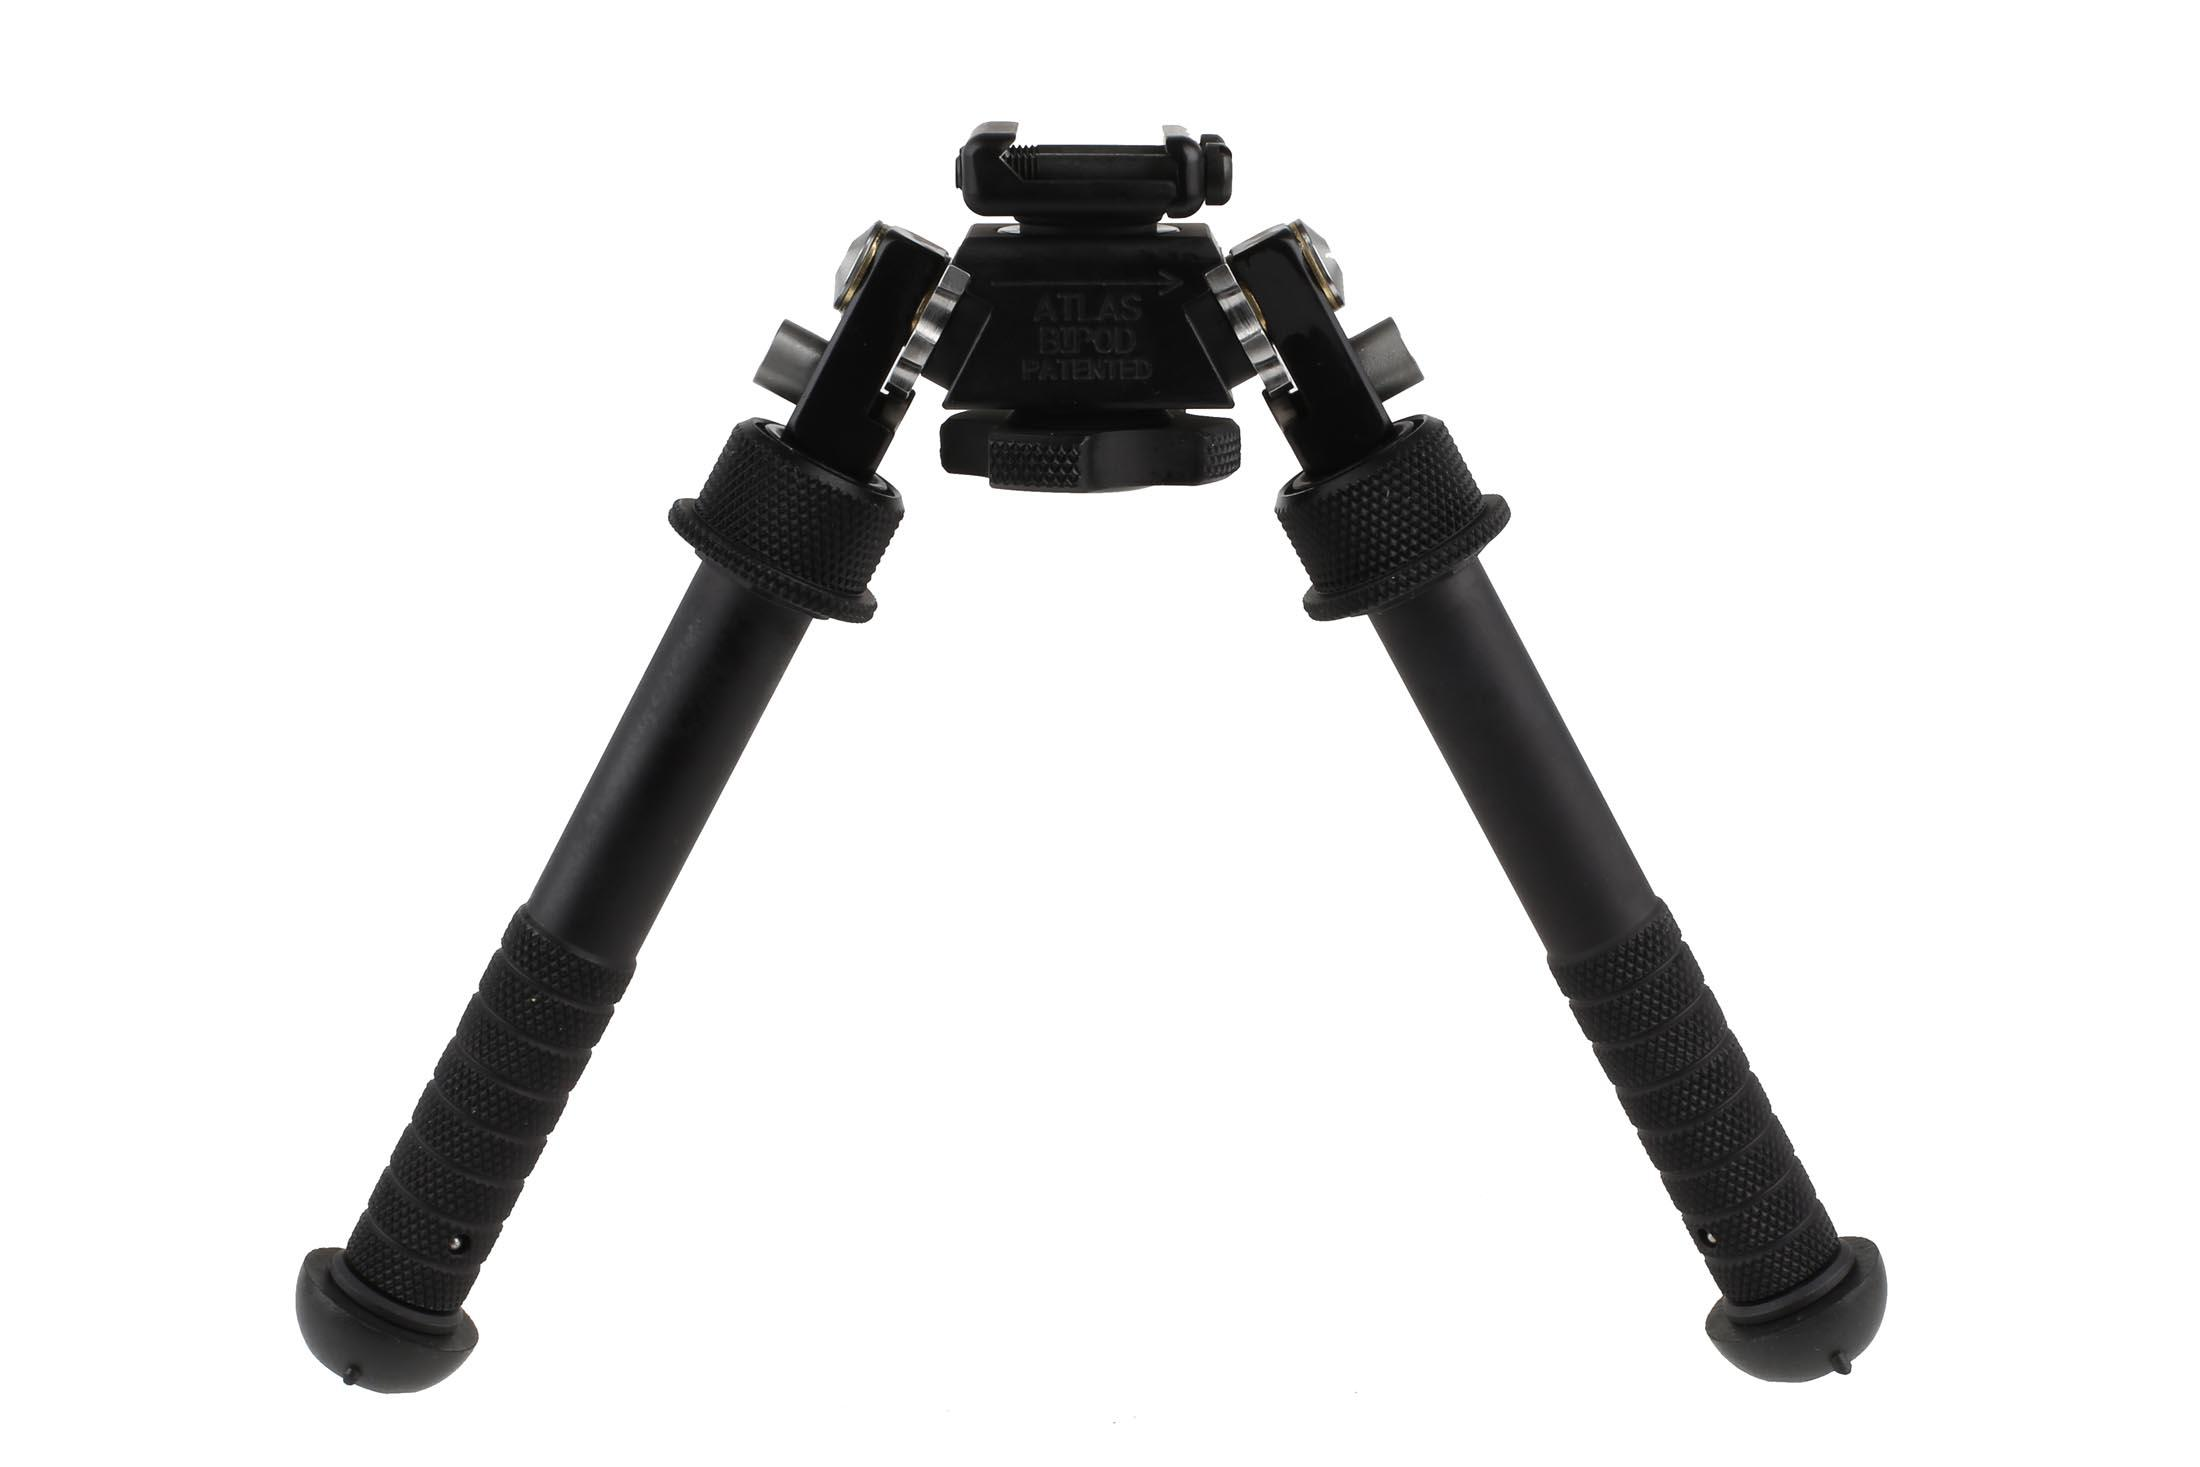 The Atlas Precision BT10 V8 bipod comes with a mount for picatinny rails